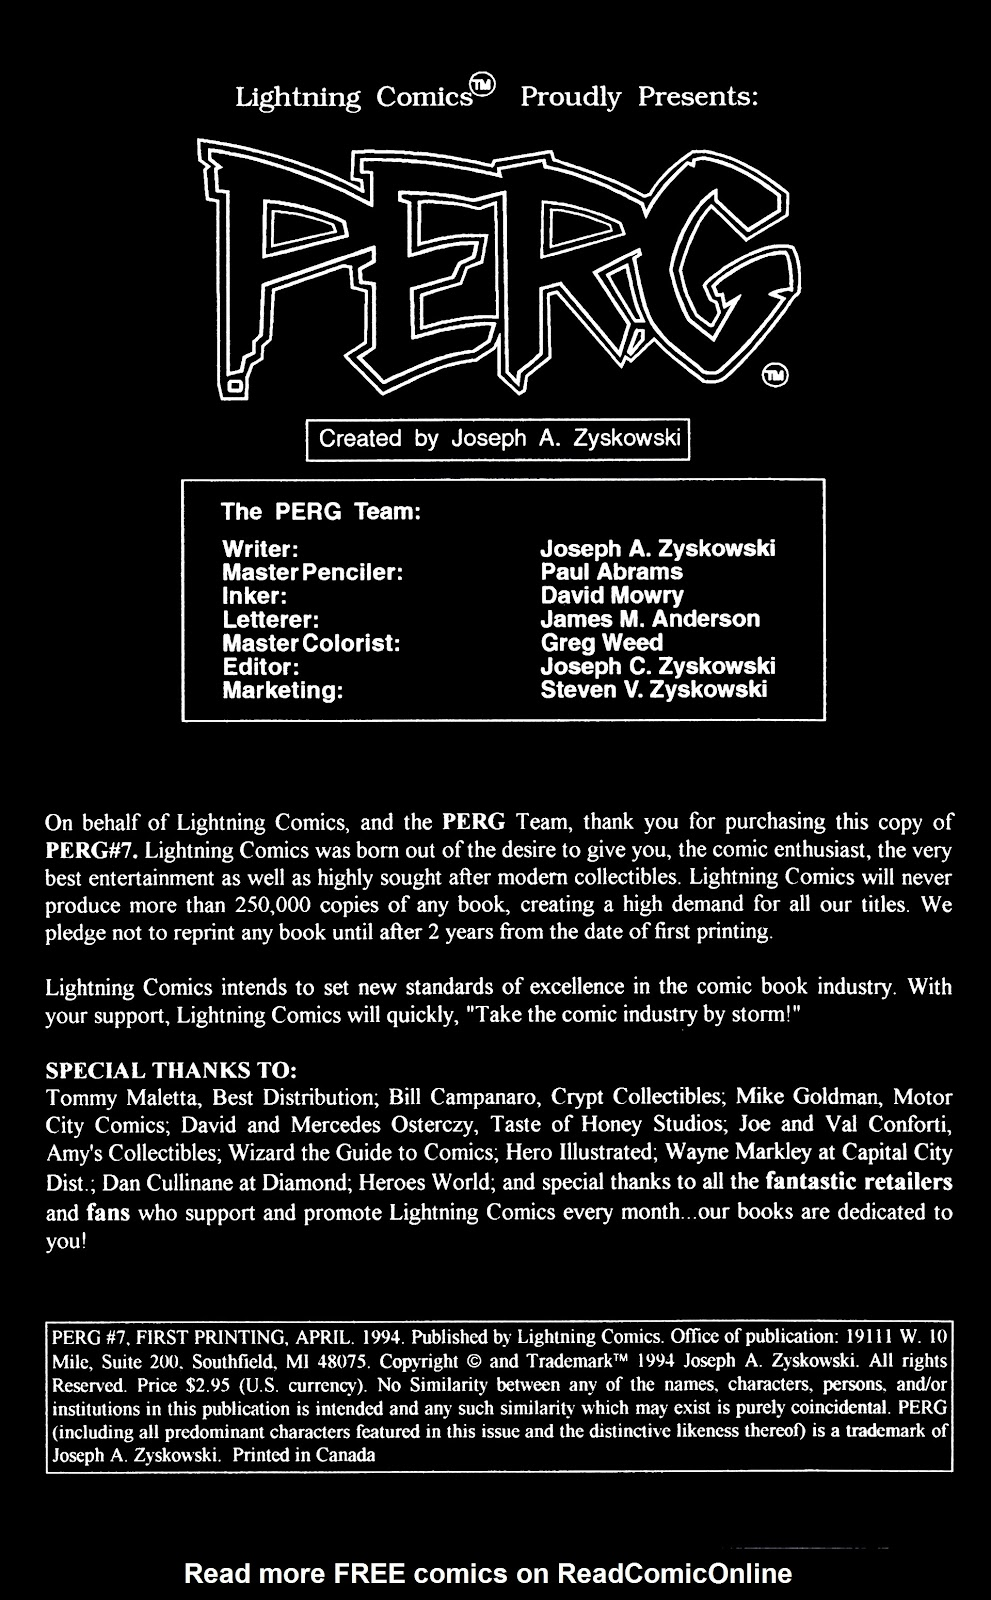 Read online Perg comic -  Issue #7 - 2